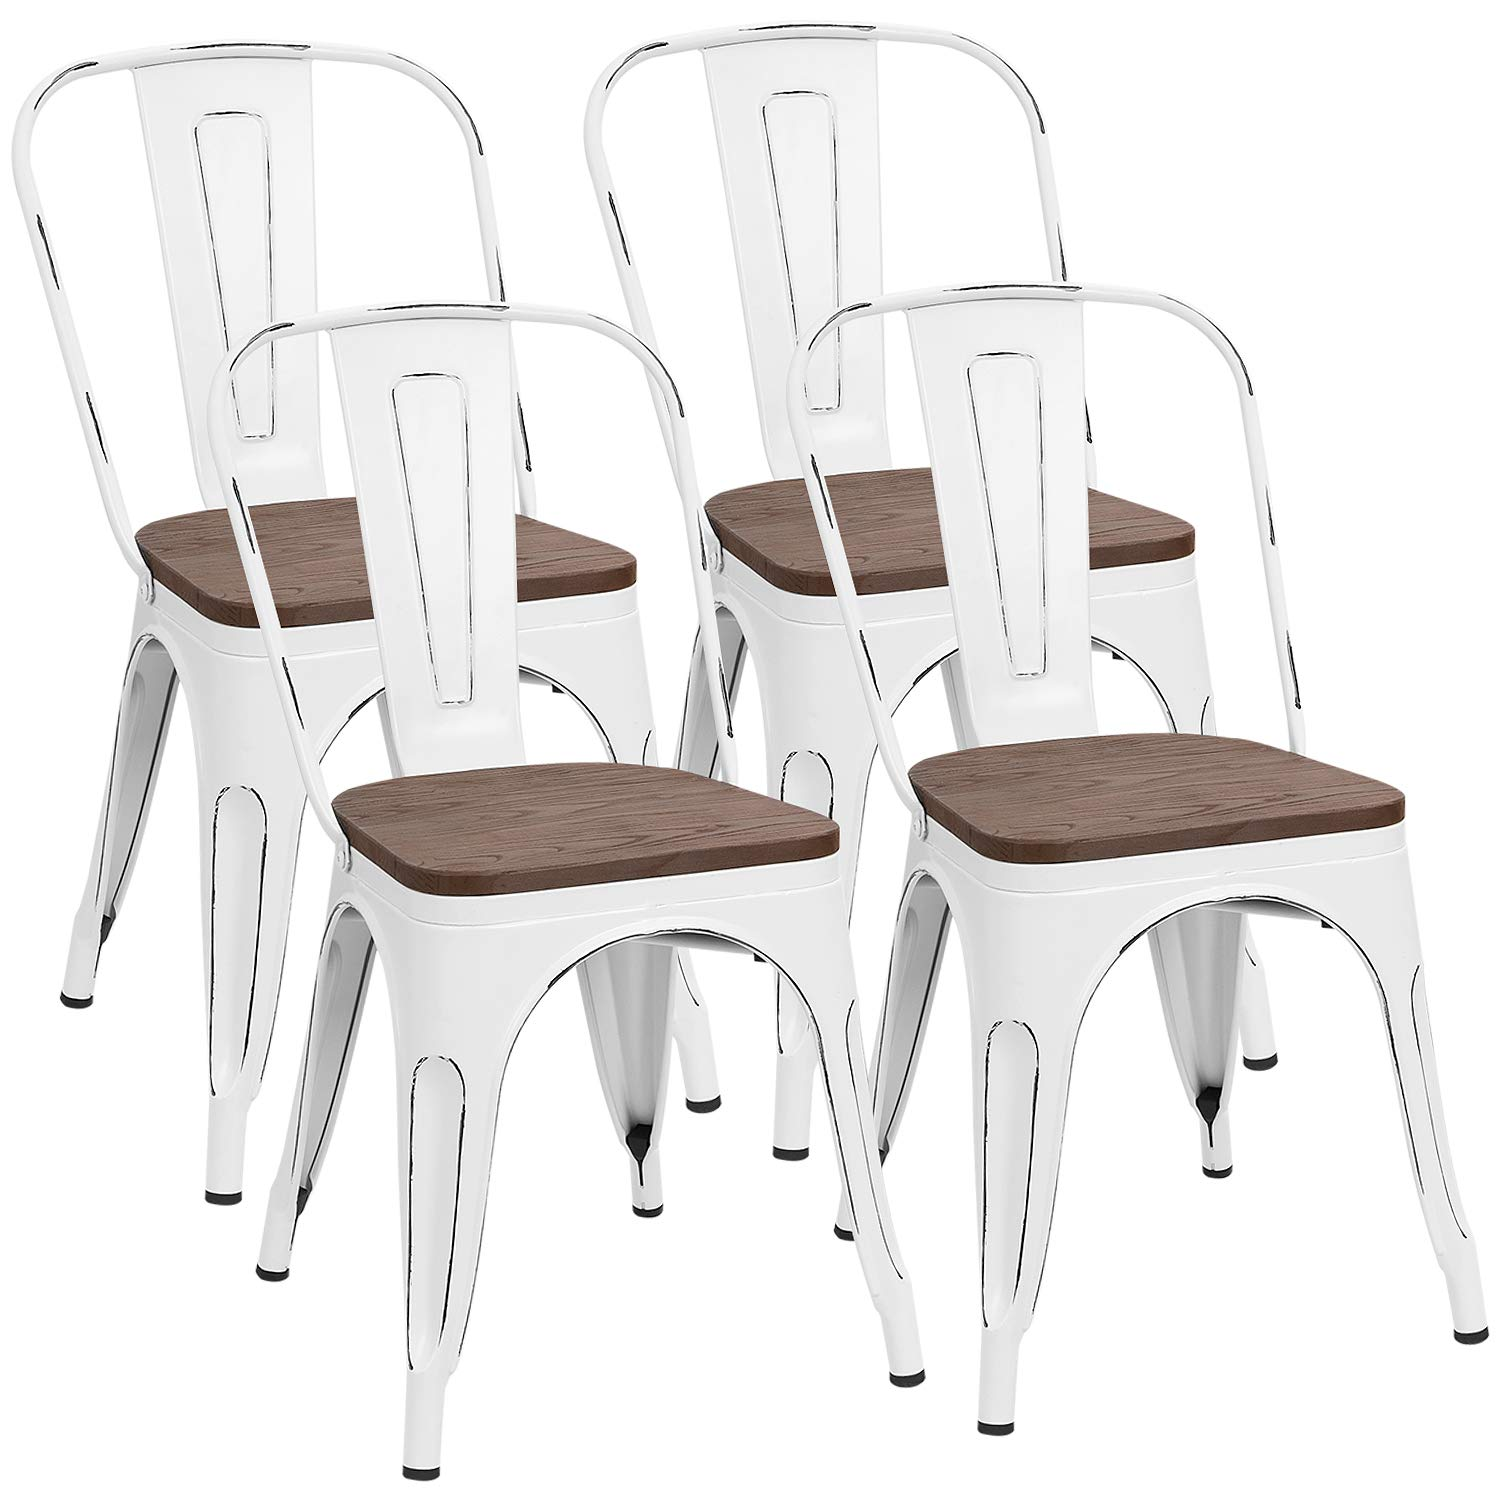 Furmax Metal Dining Chair with Wood Seat,Indoor-Outdoor Use Stackable Chic Dining Bistro Cafe Side Metal Chairs (Set of 4) (White Distressed)